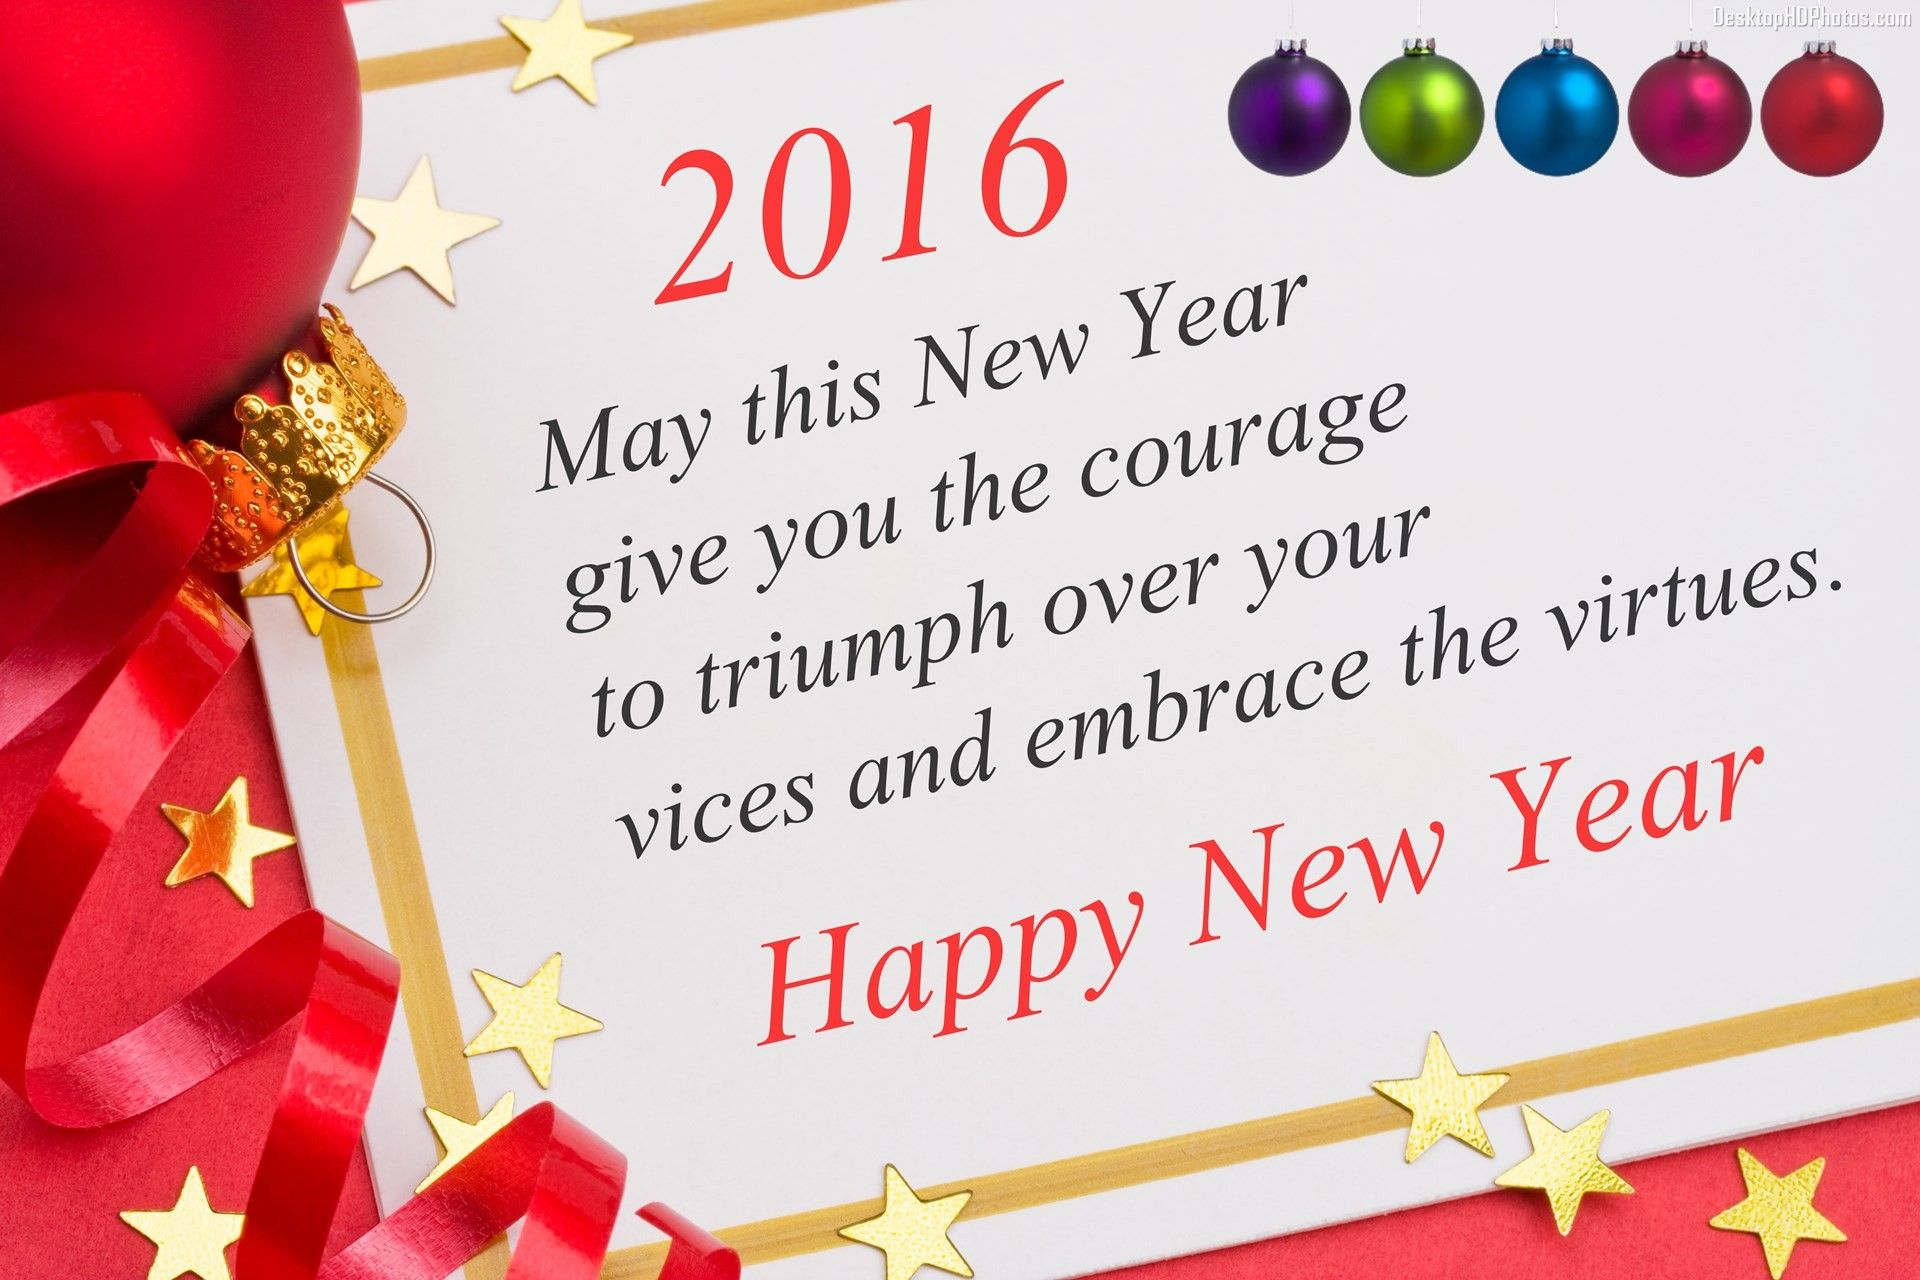 45 Beautiful Happy New Year Wallpapers Hd Year 2016 Quotes Images